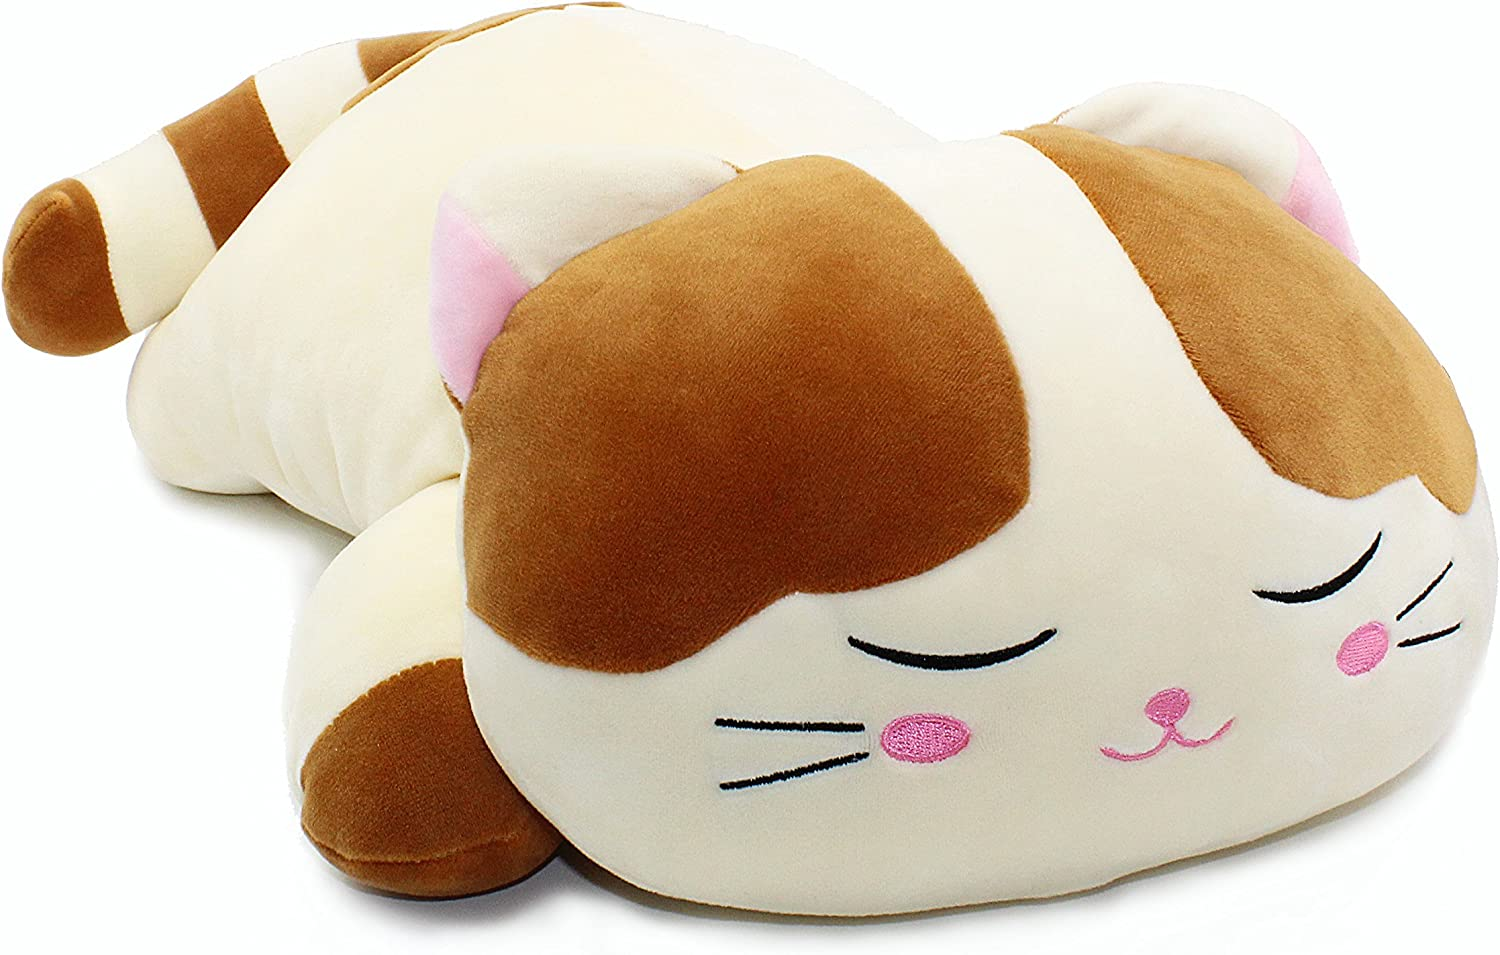 Onsoyours Plush Cat Doll Pillow Stuffed Chubby Cat Cute Fluffy Soft Plush Bread Toast Cat Cushion Animal Pillow for Kids Brown White, 15.7 inch